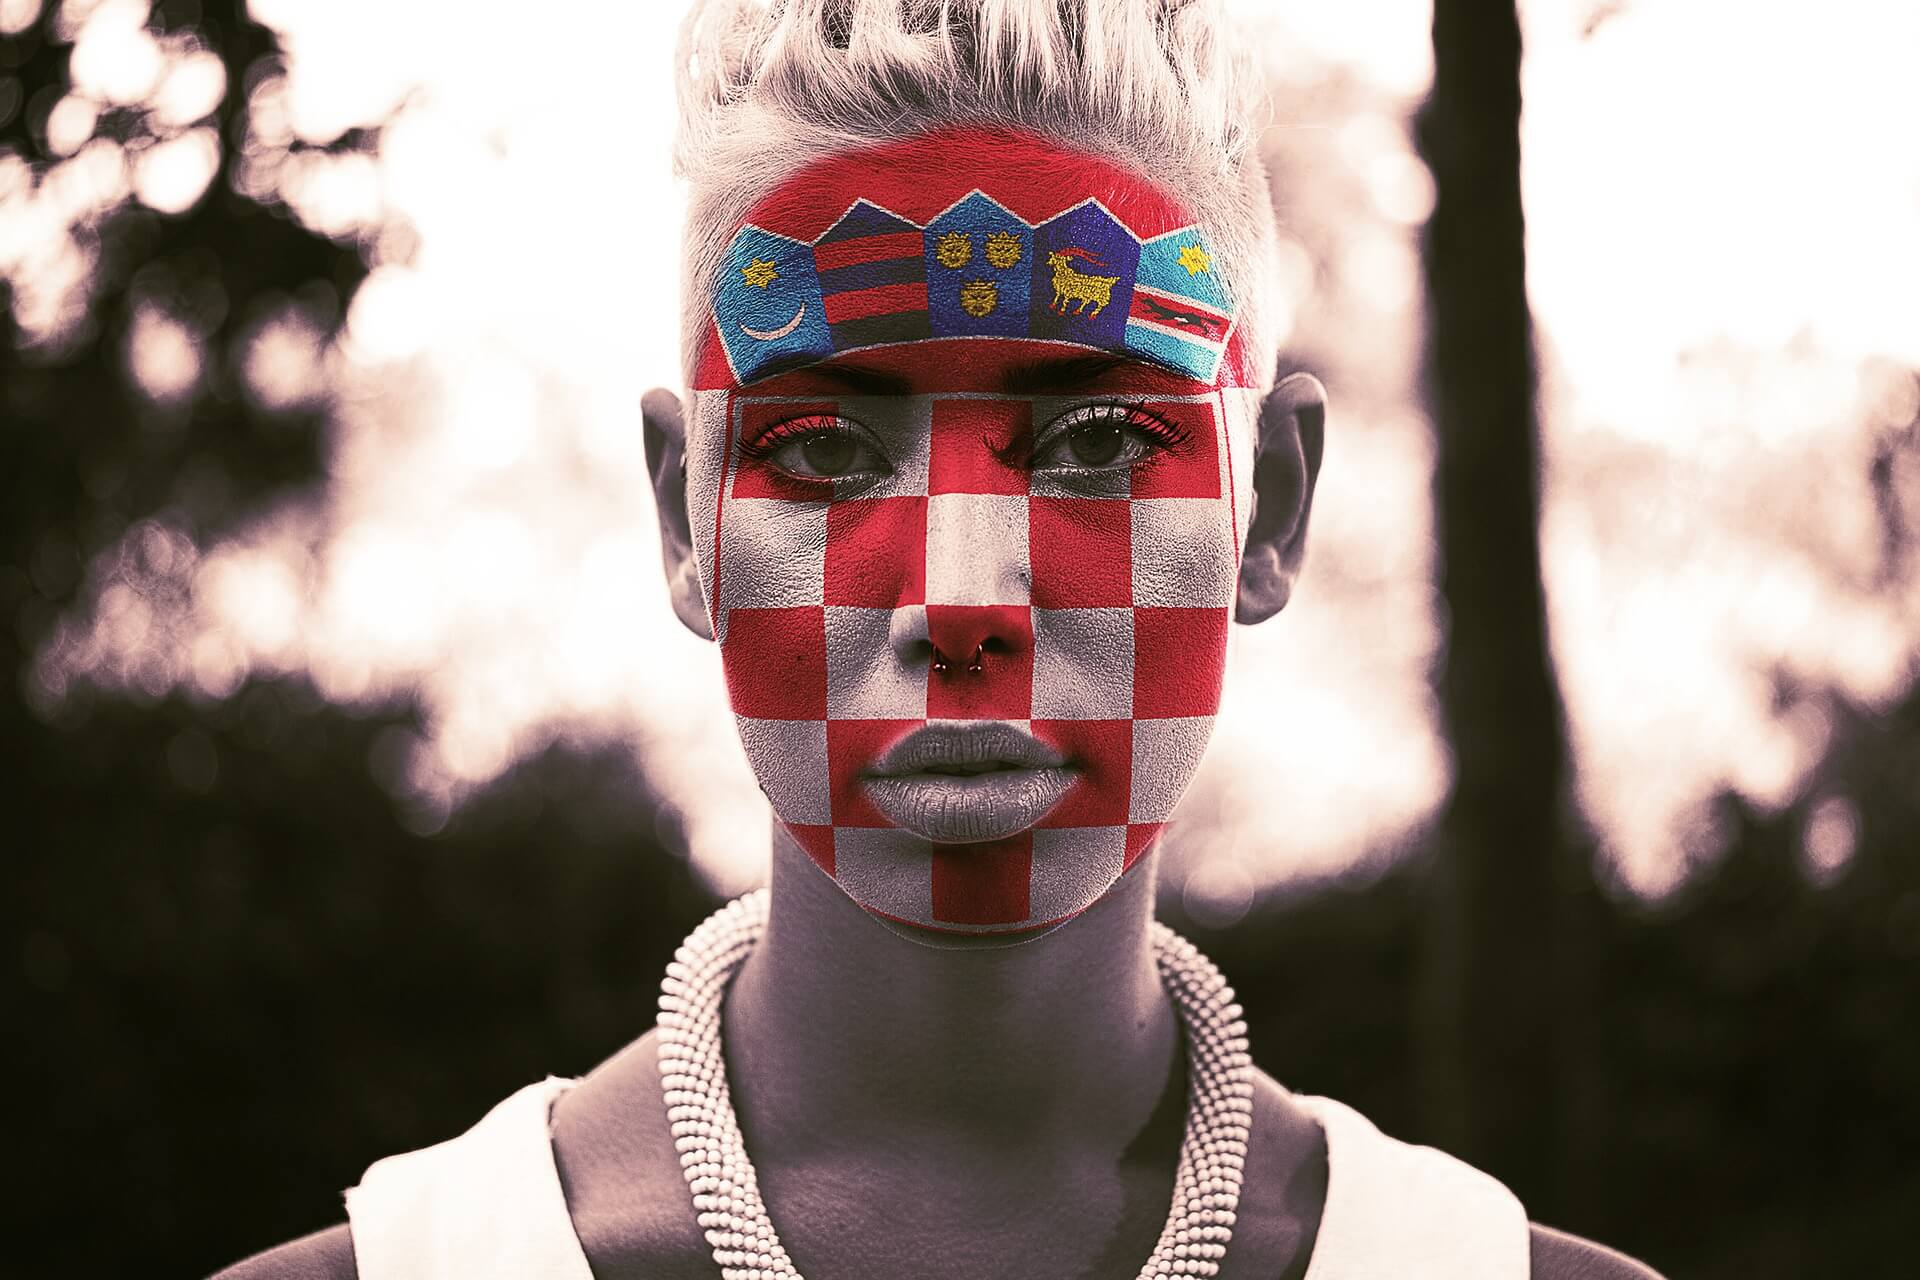 Croatian girl